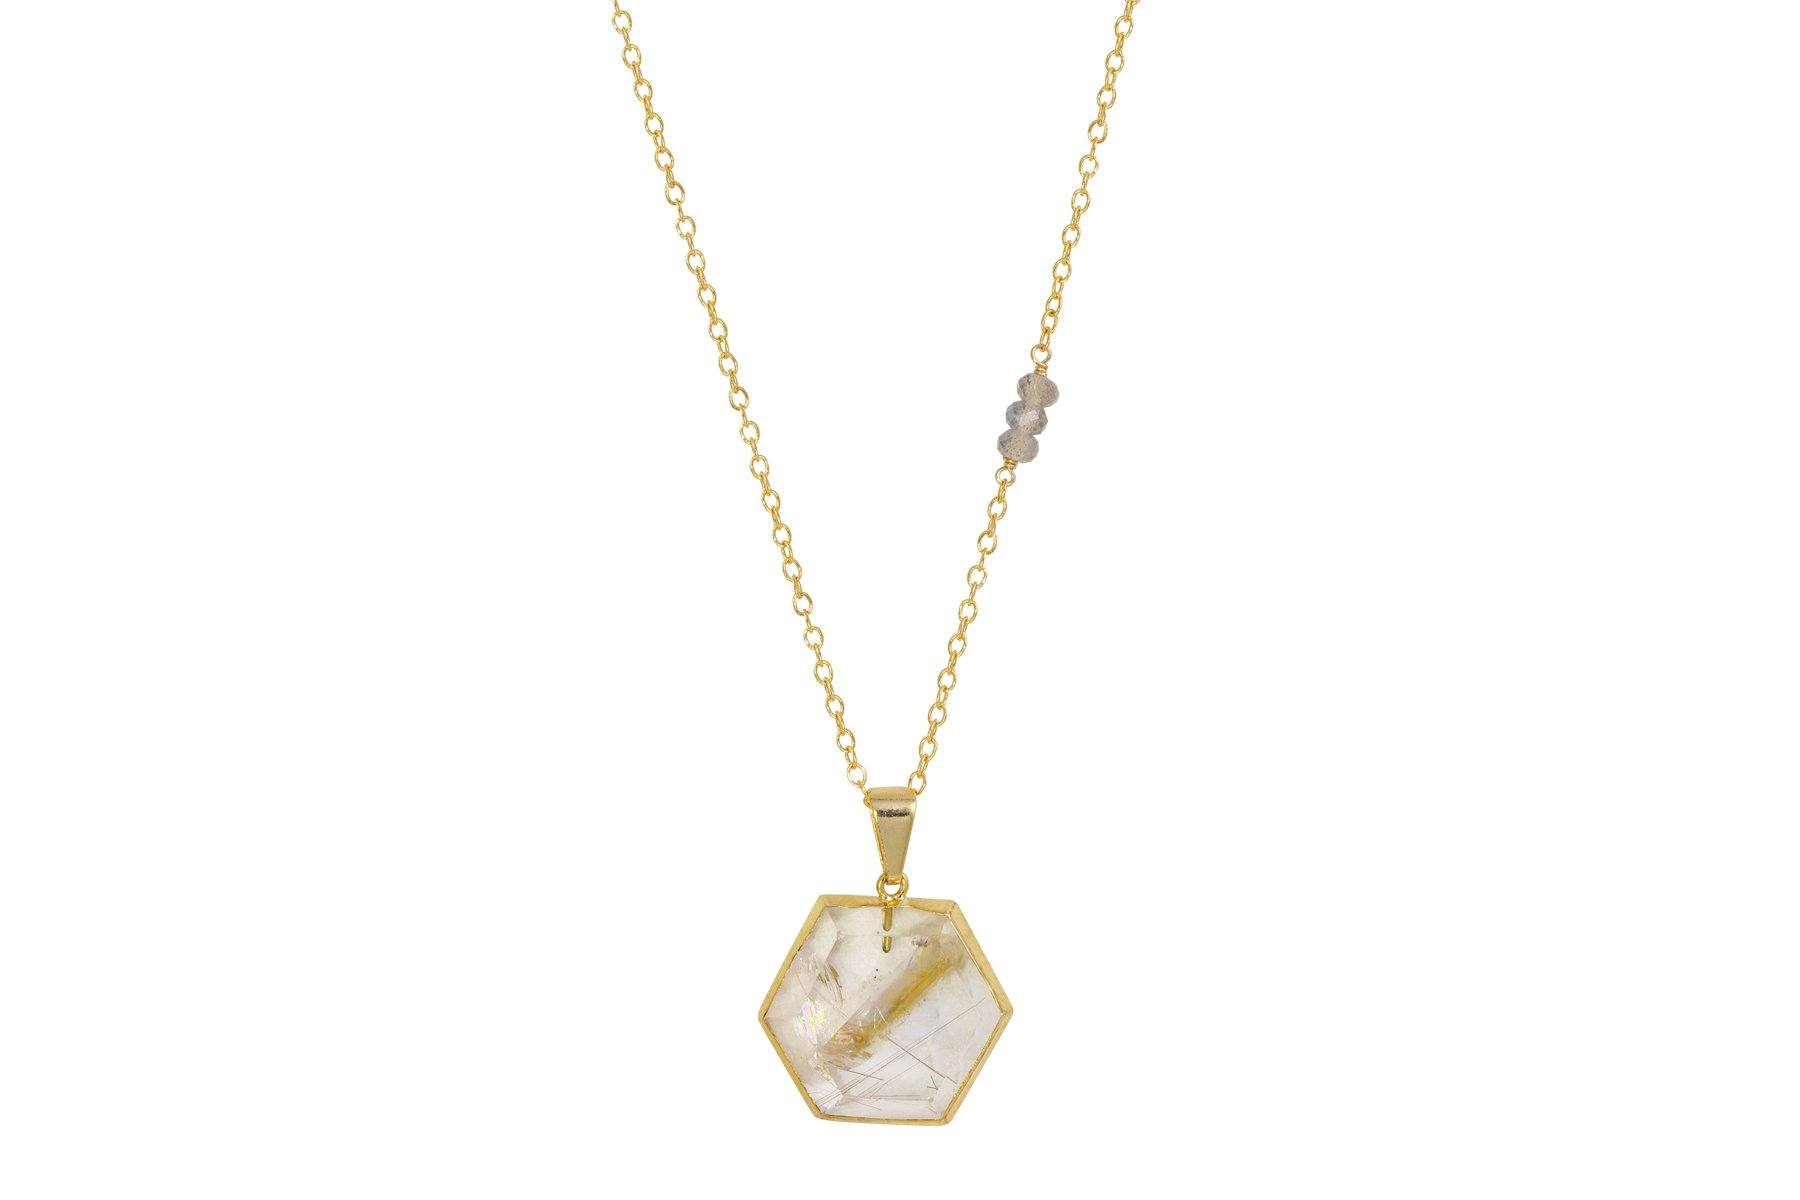 Harmonia Rutilated Quartz Necklace - a collaboration with Casey Van Zandt - Amanda K Lockrow